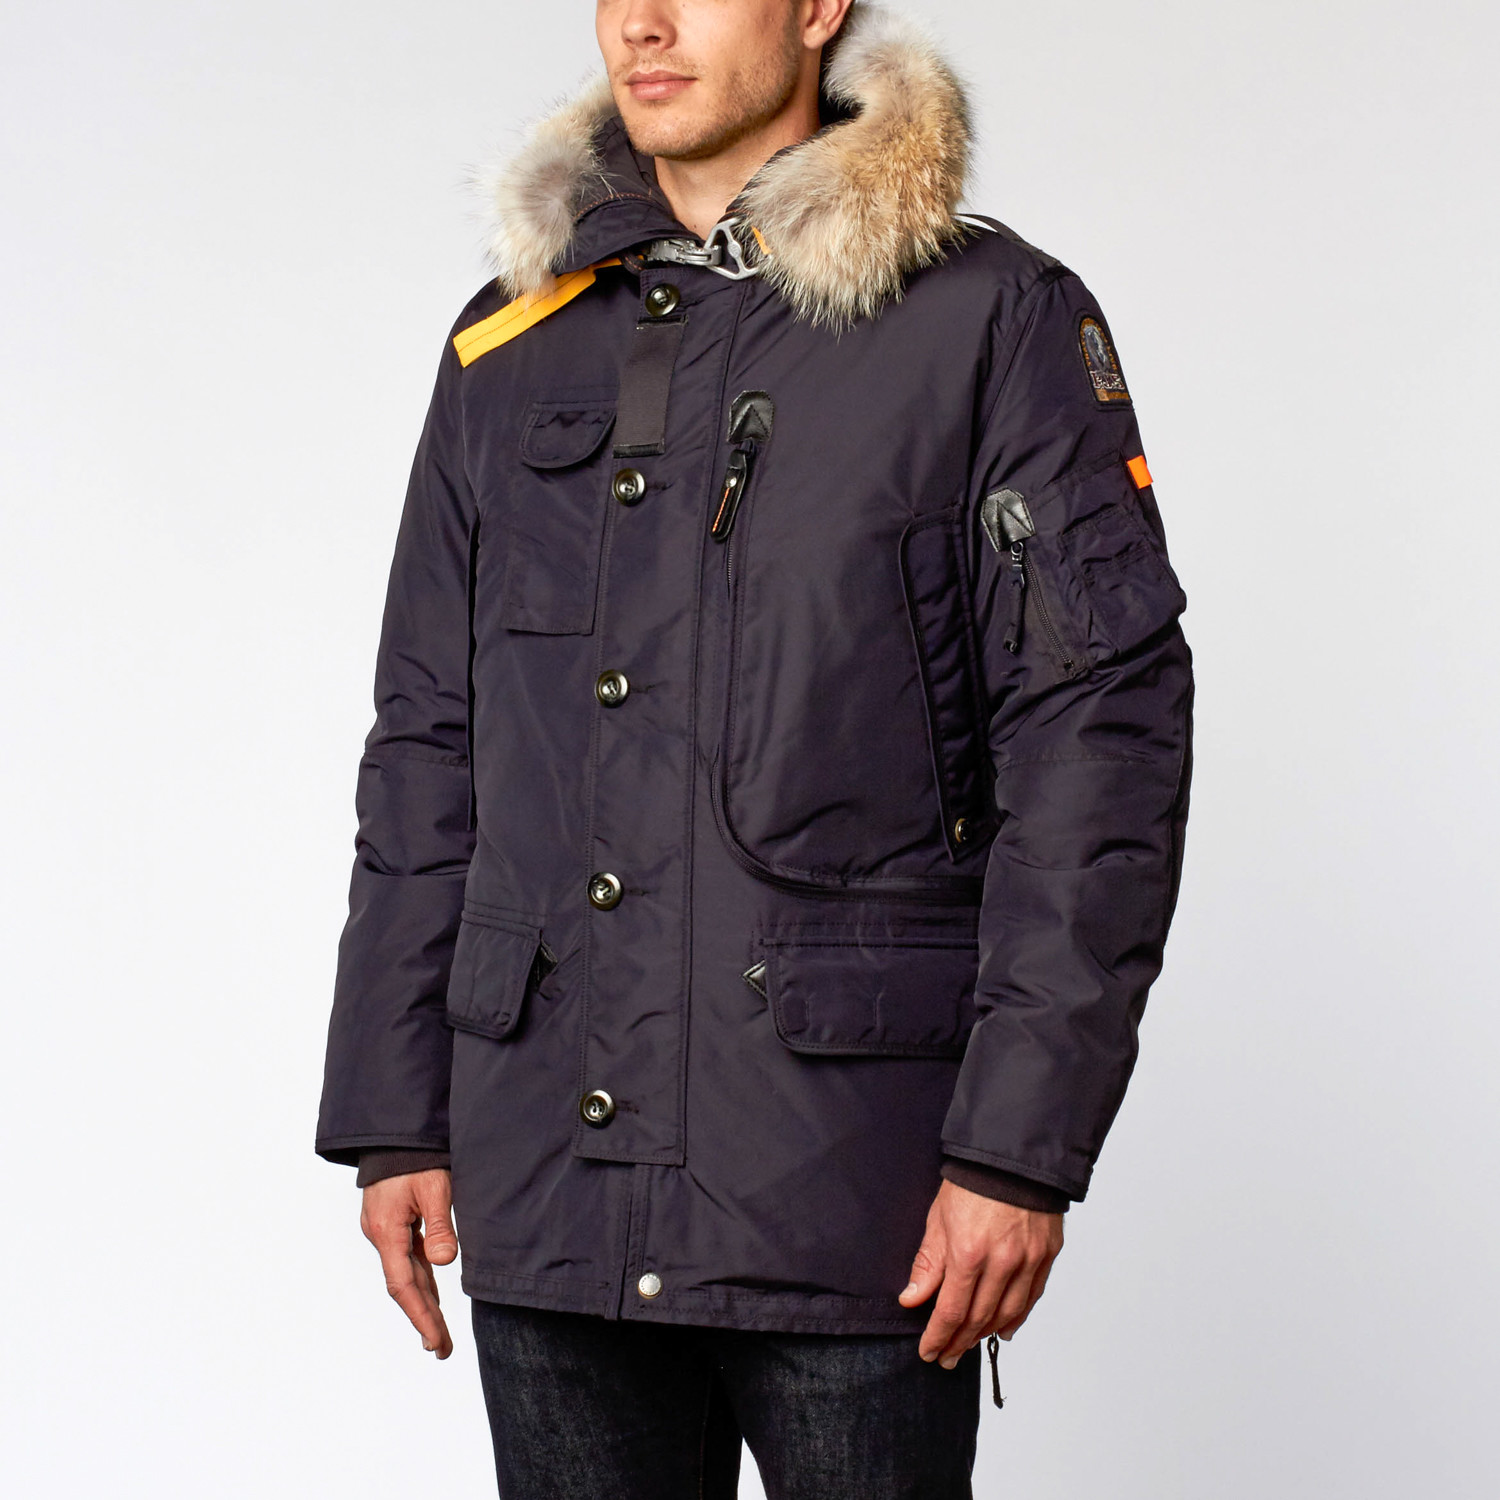 is parajumpers worth it